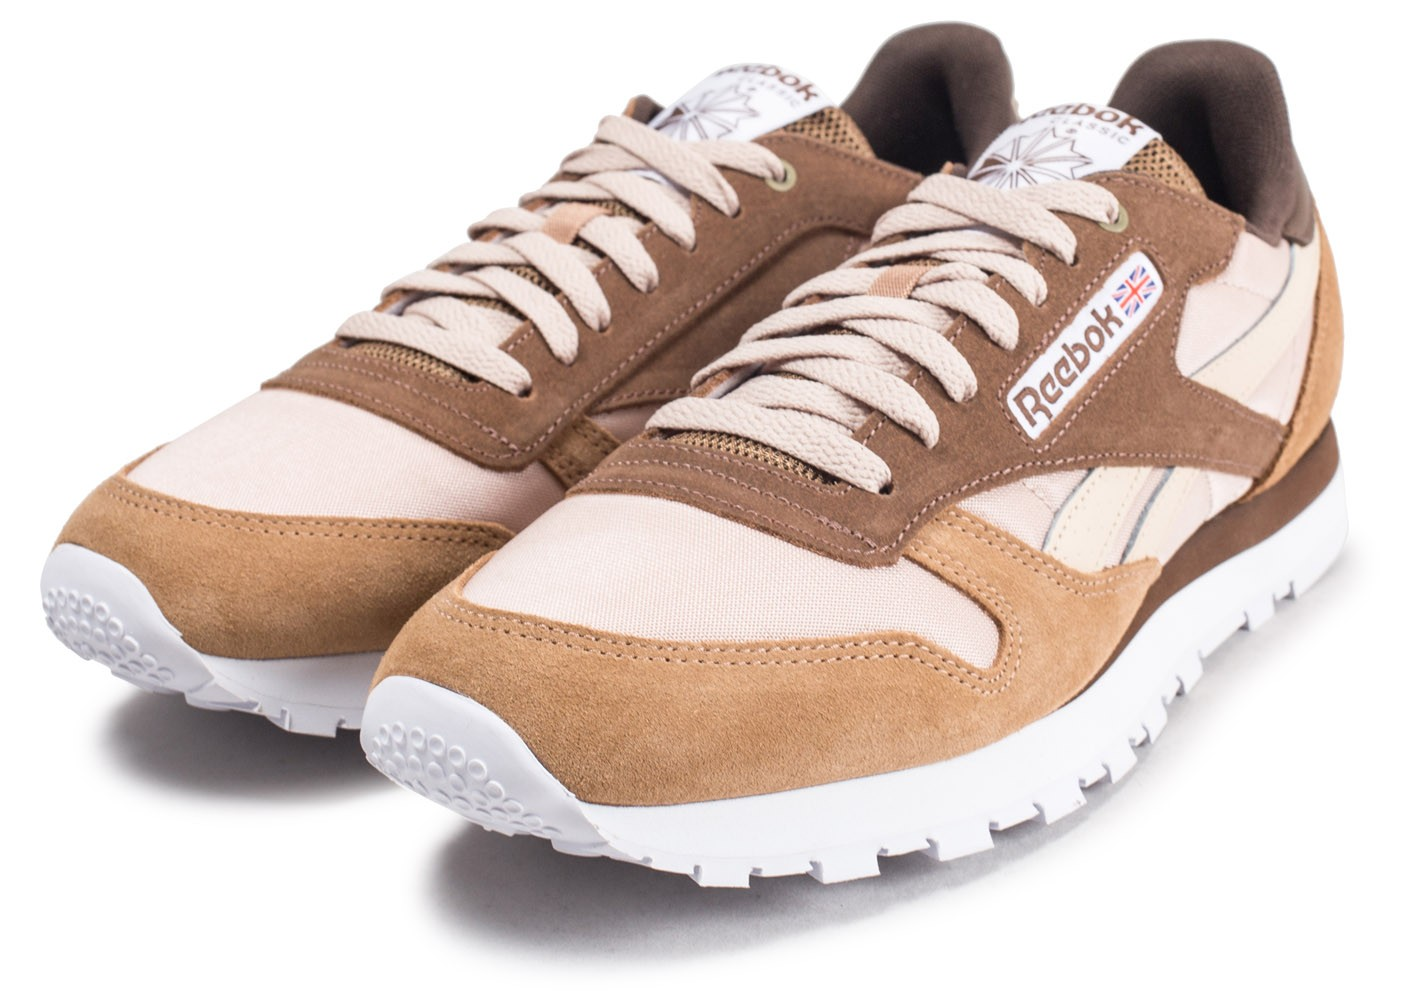 Marron Color Leather System Cans Montana Chaussures Reebok Classic JuTclK13F